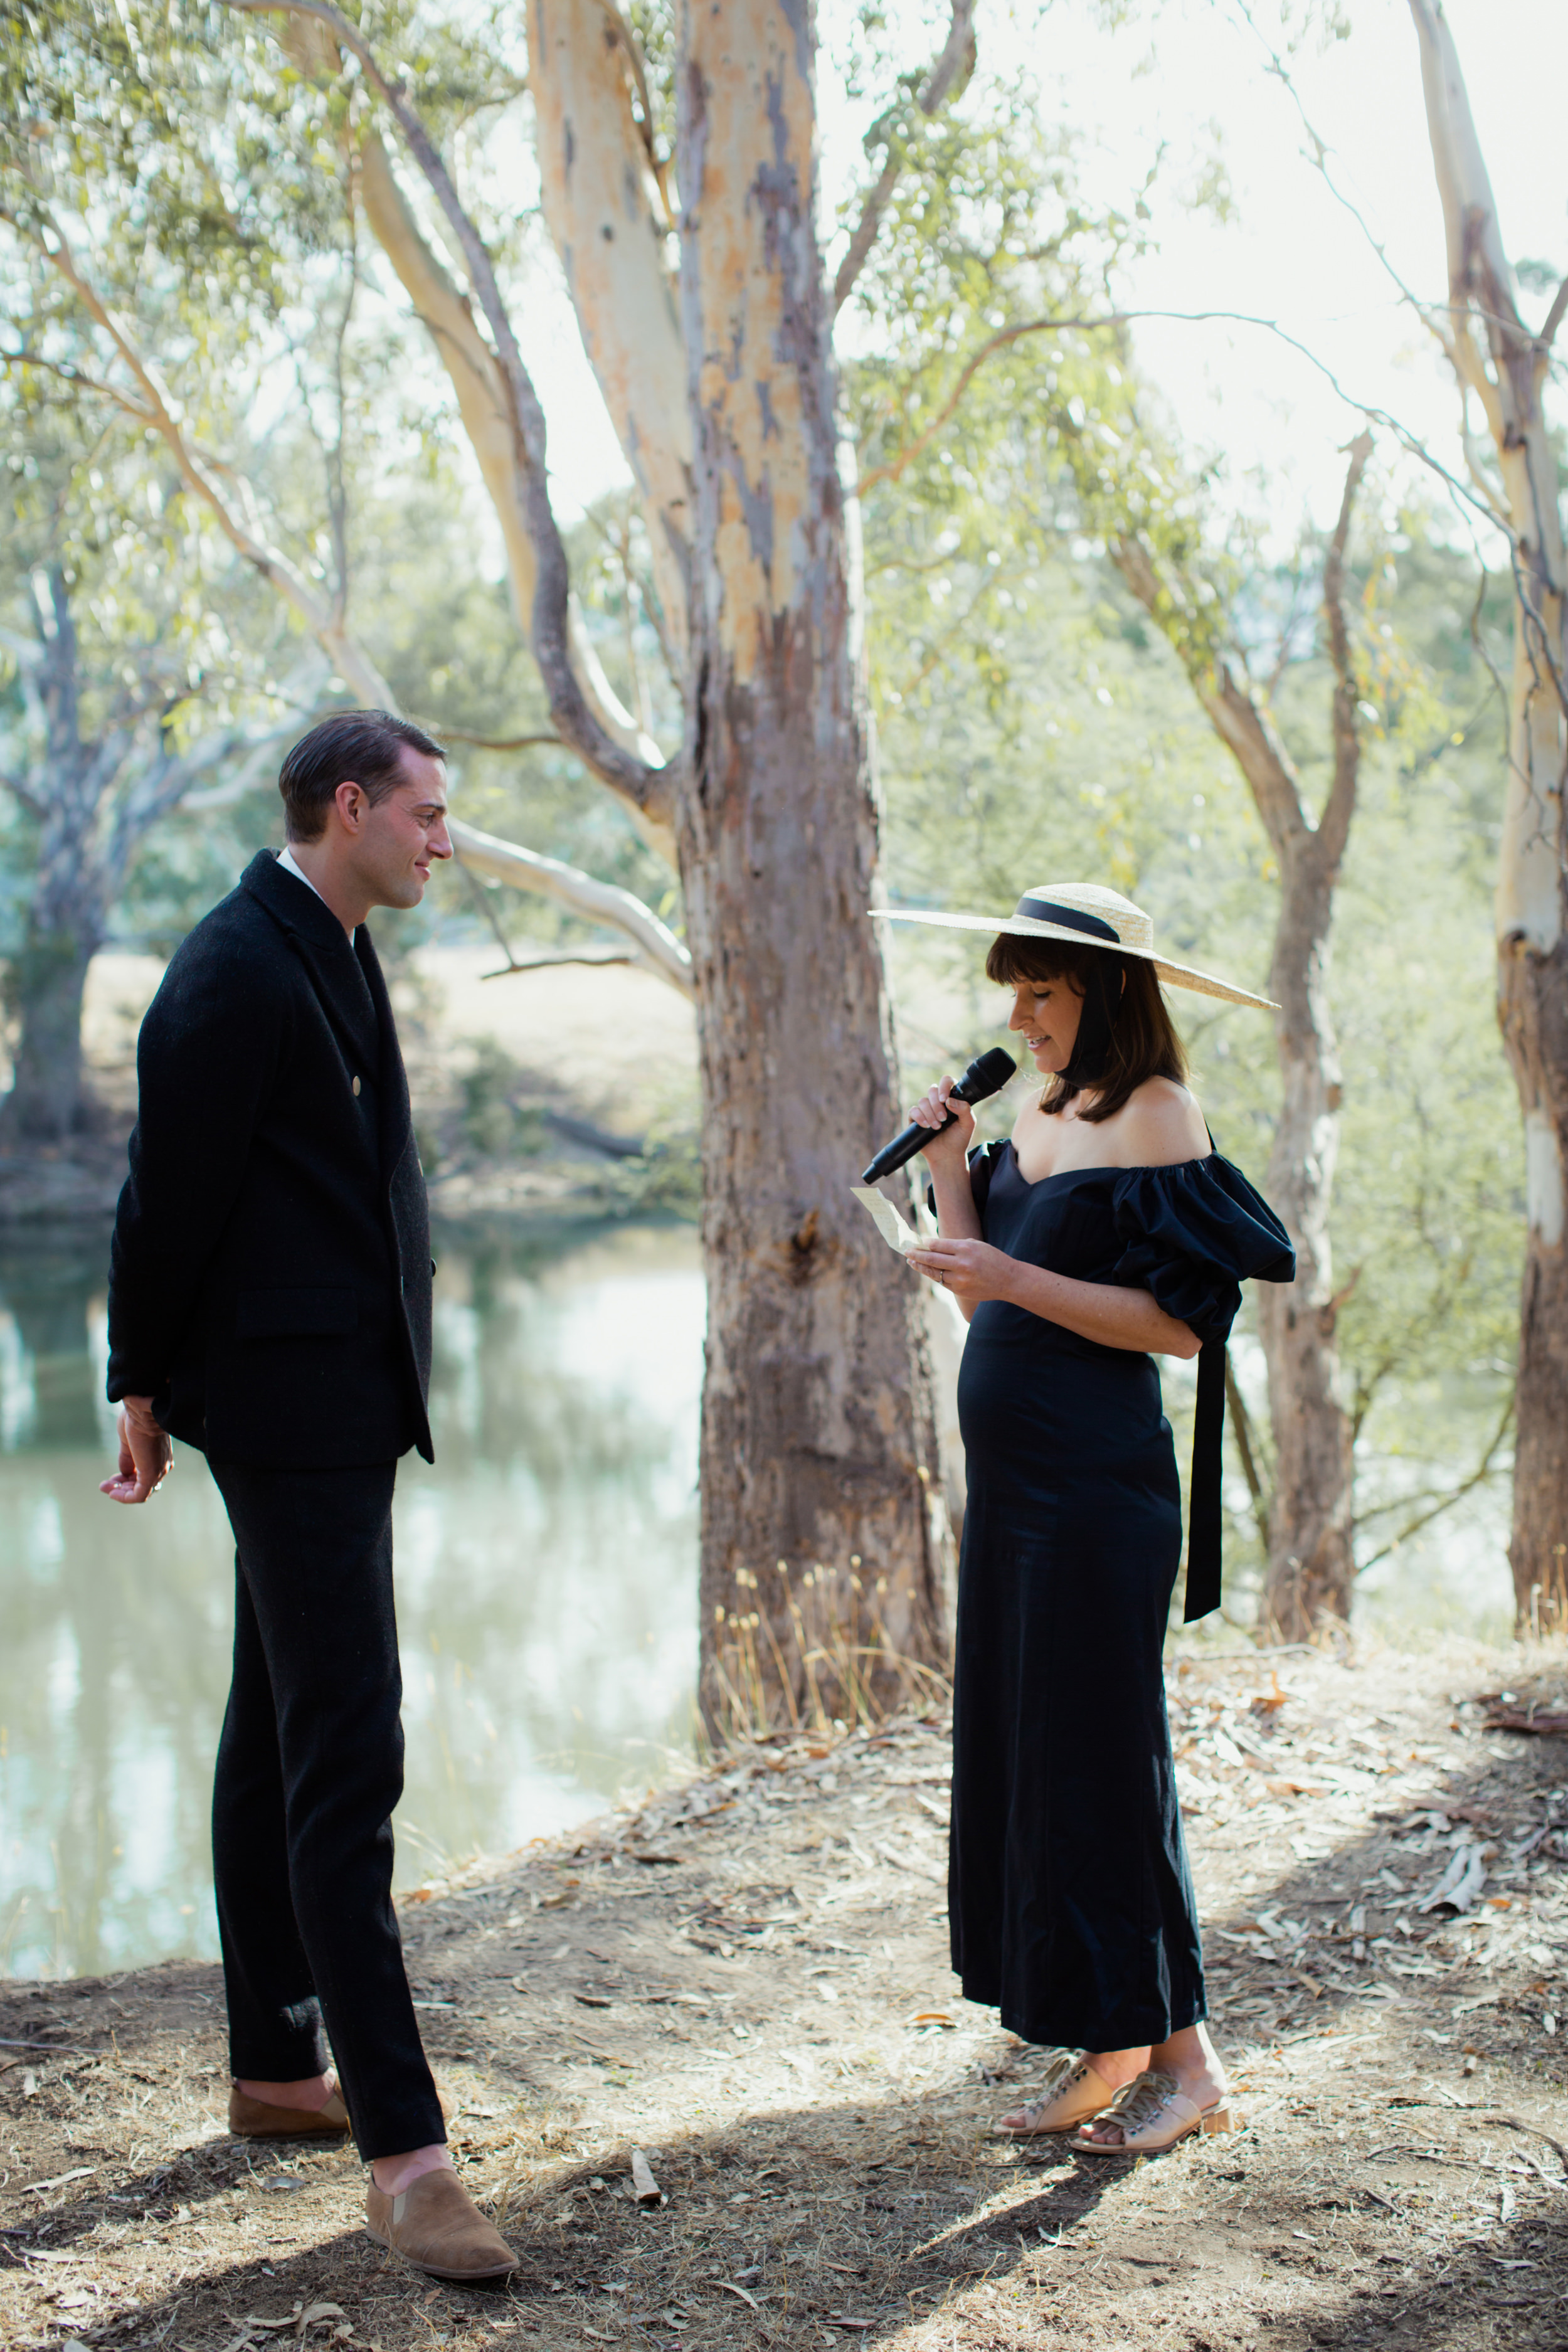 I-Got-You-Babe-Weddings-Claire-Dave-Trawol-VIC-Country-Property-Wedding111.JPG